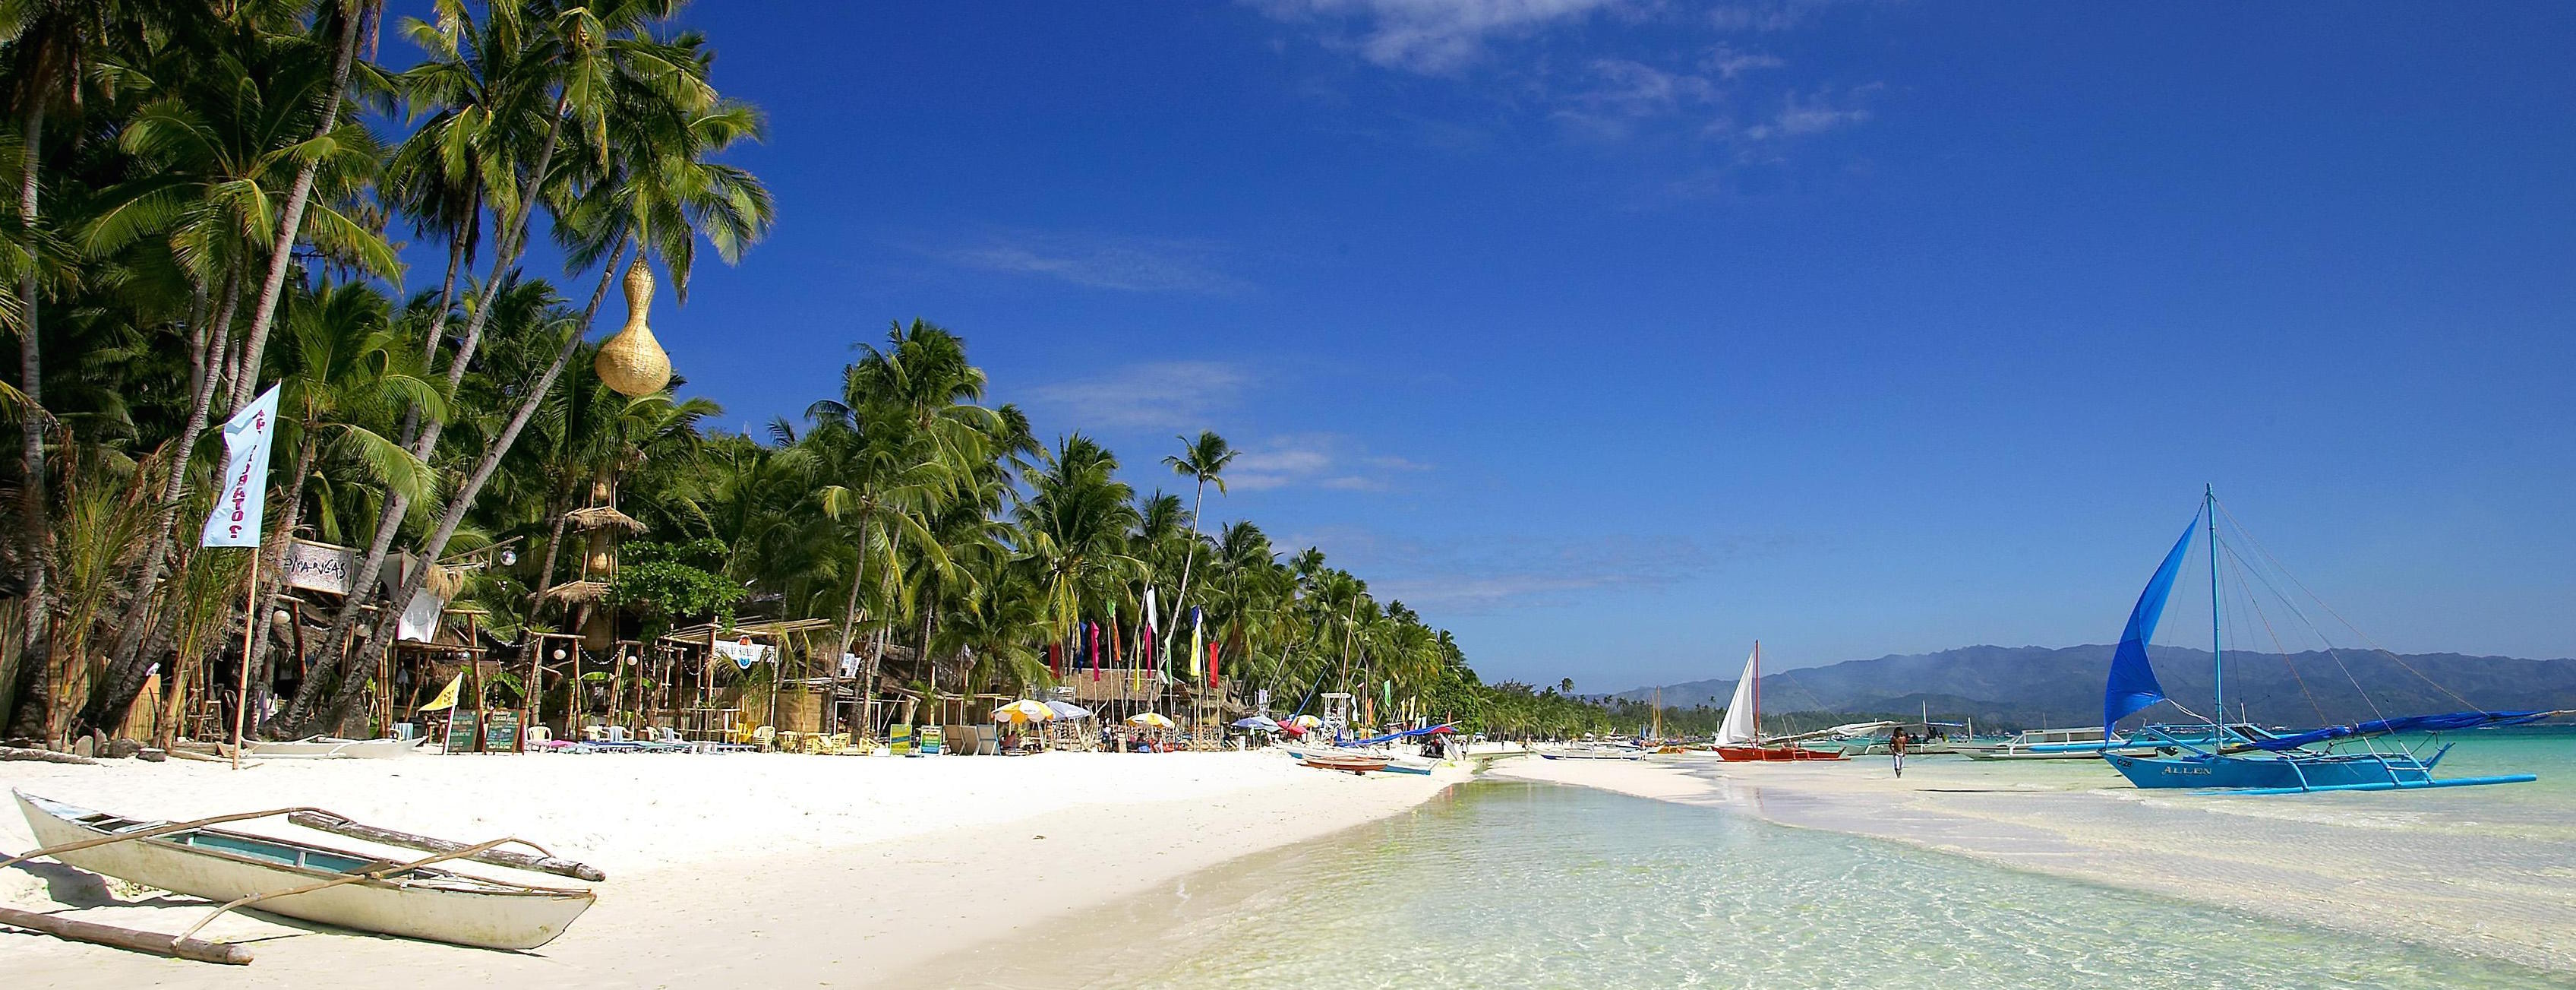 5 Most Incredible Places To Visit In The Philippines Sharemoney Blog